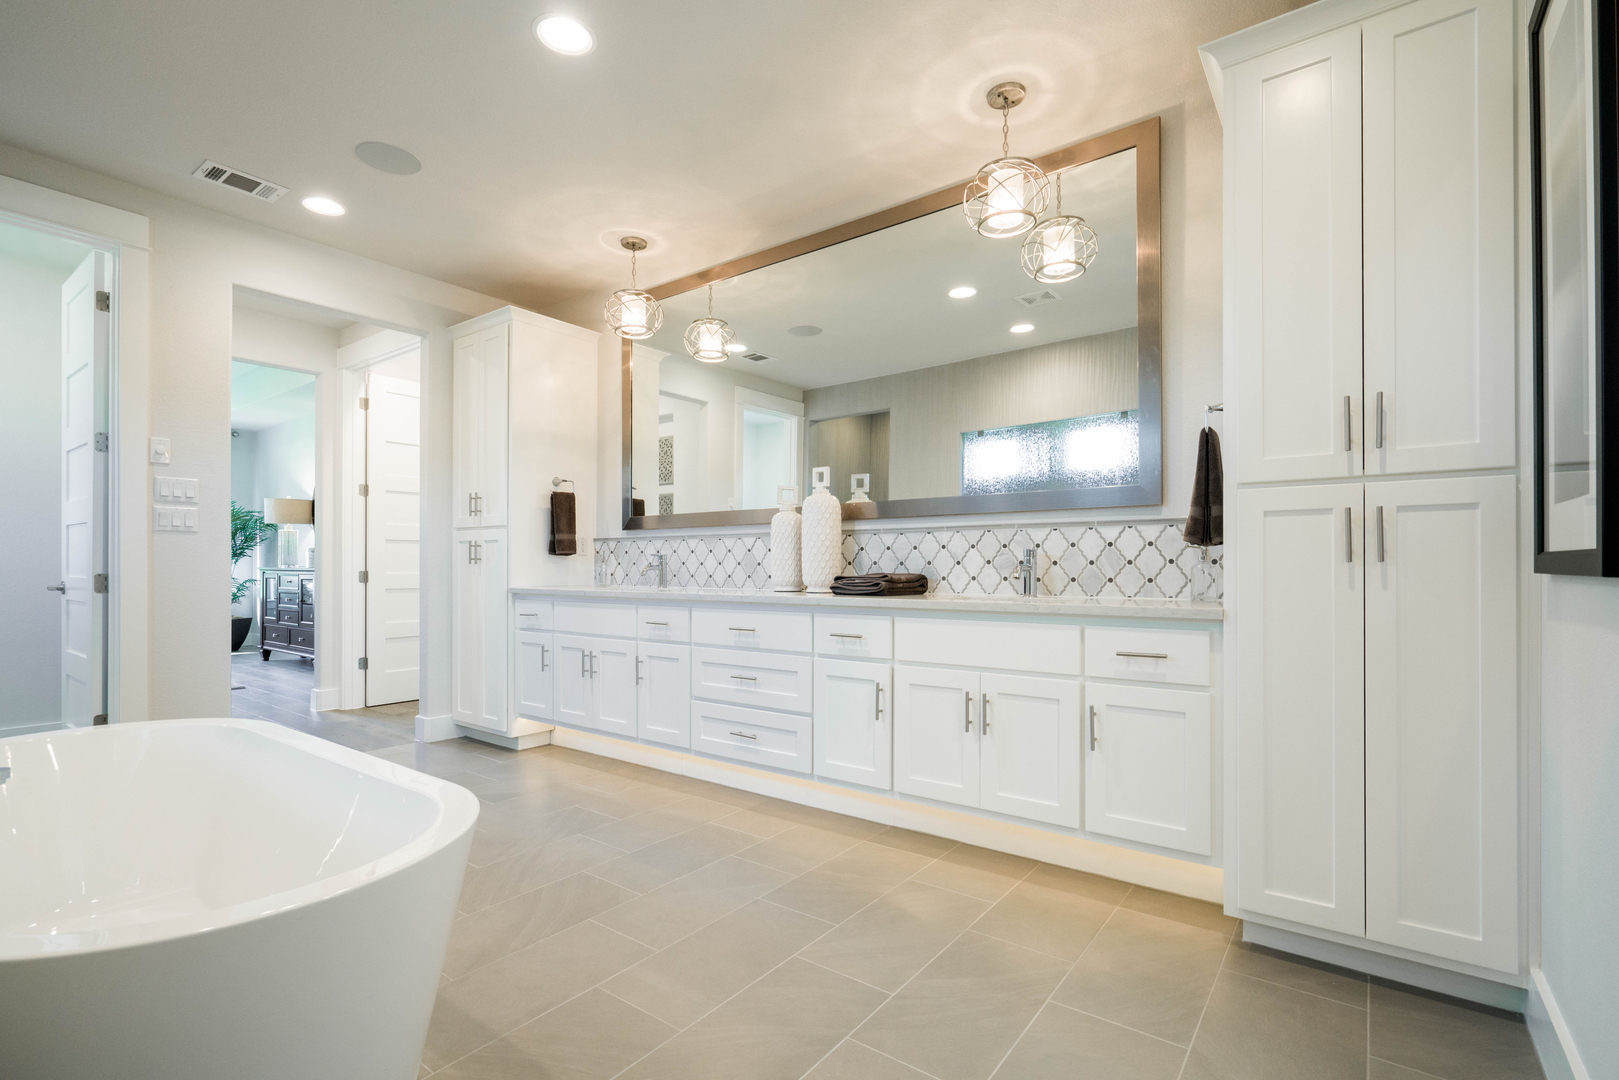 Grand Endeavor Homes in Georgetown, Tx